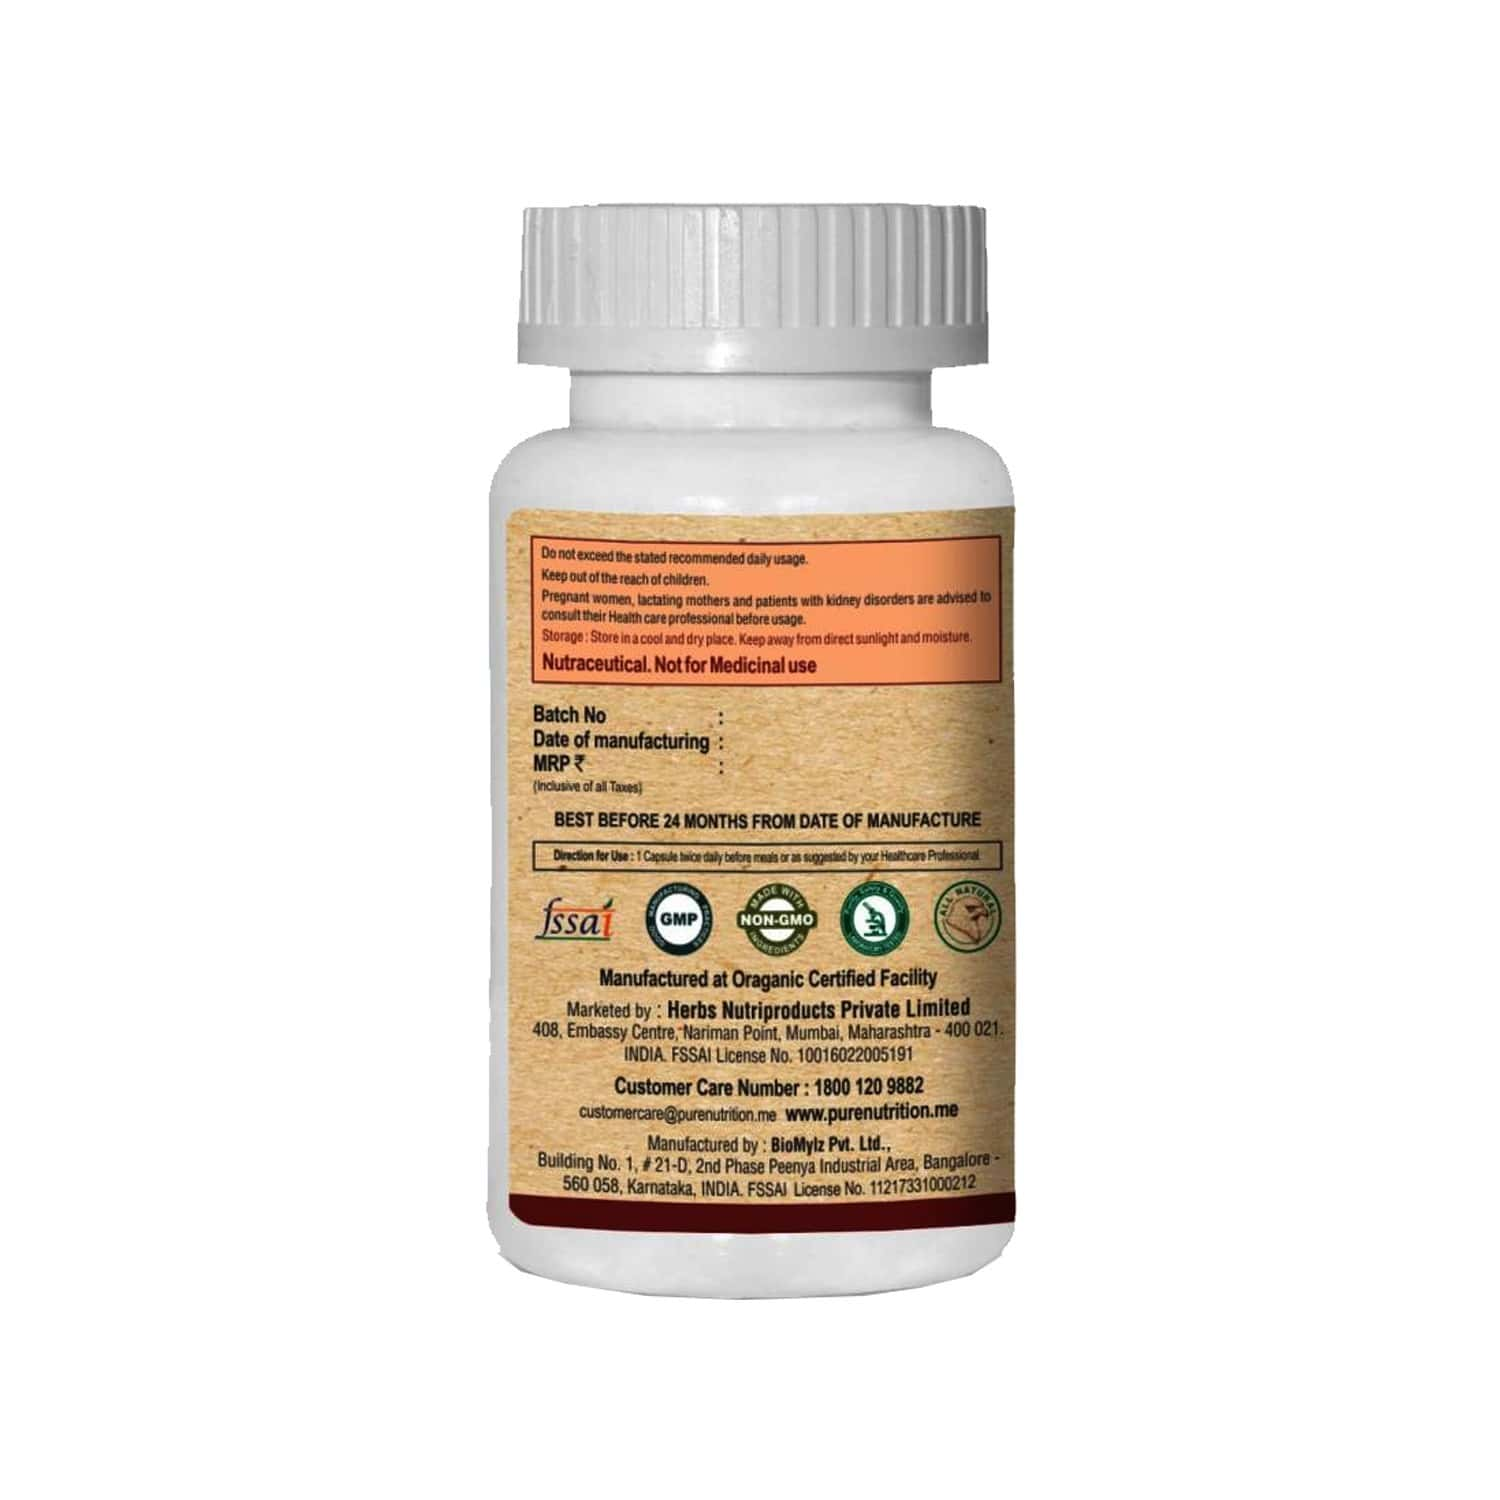 Pure Nutrition Chitomax (supports Fat Blocking & Fat Burning) - 60 Caps